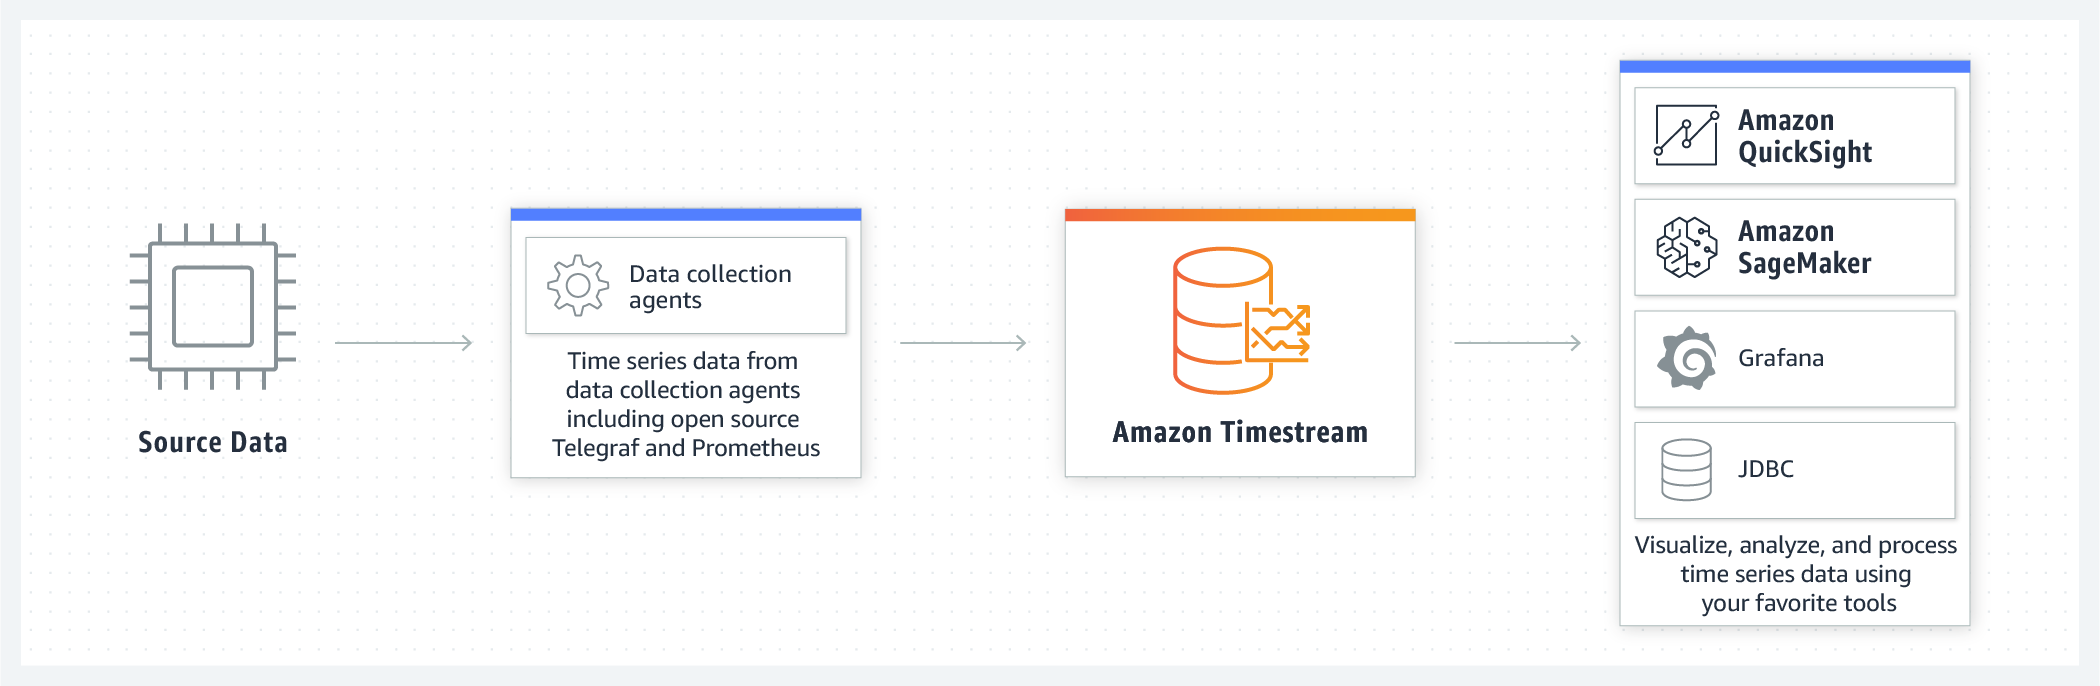 product-page-diagram_Amazon-Timestream_DevOps@2x